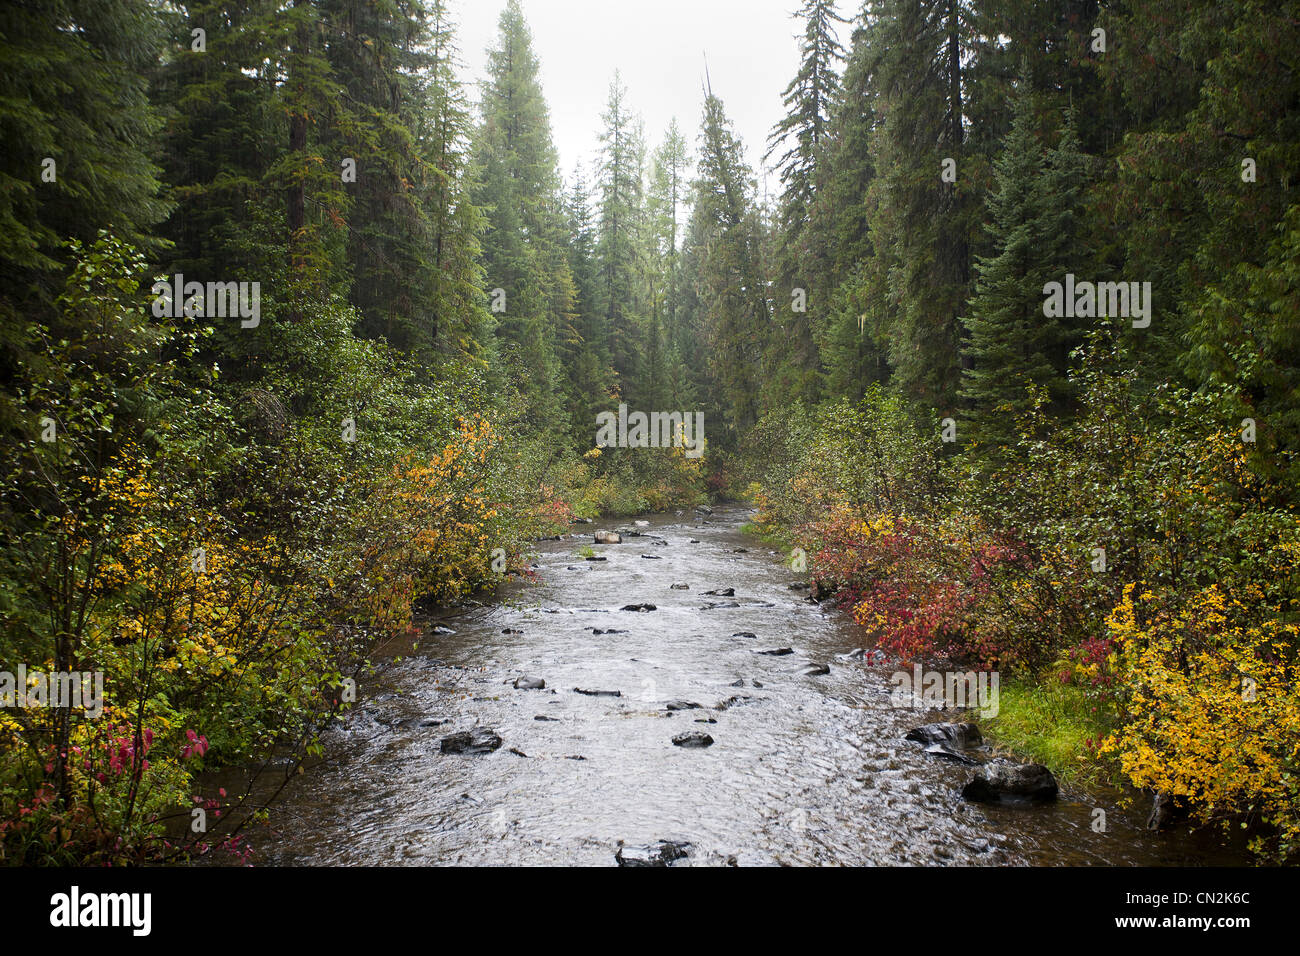 Misty River in Forest, Montana, USA - Stock Image